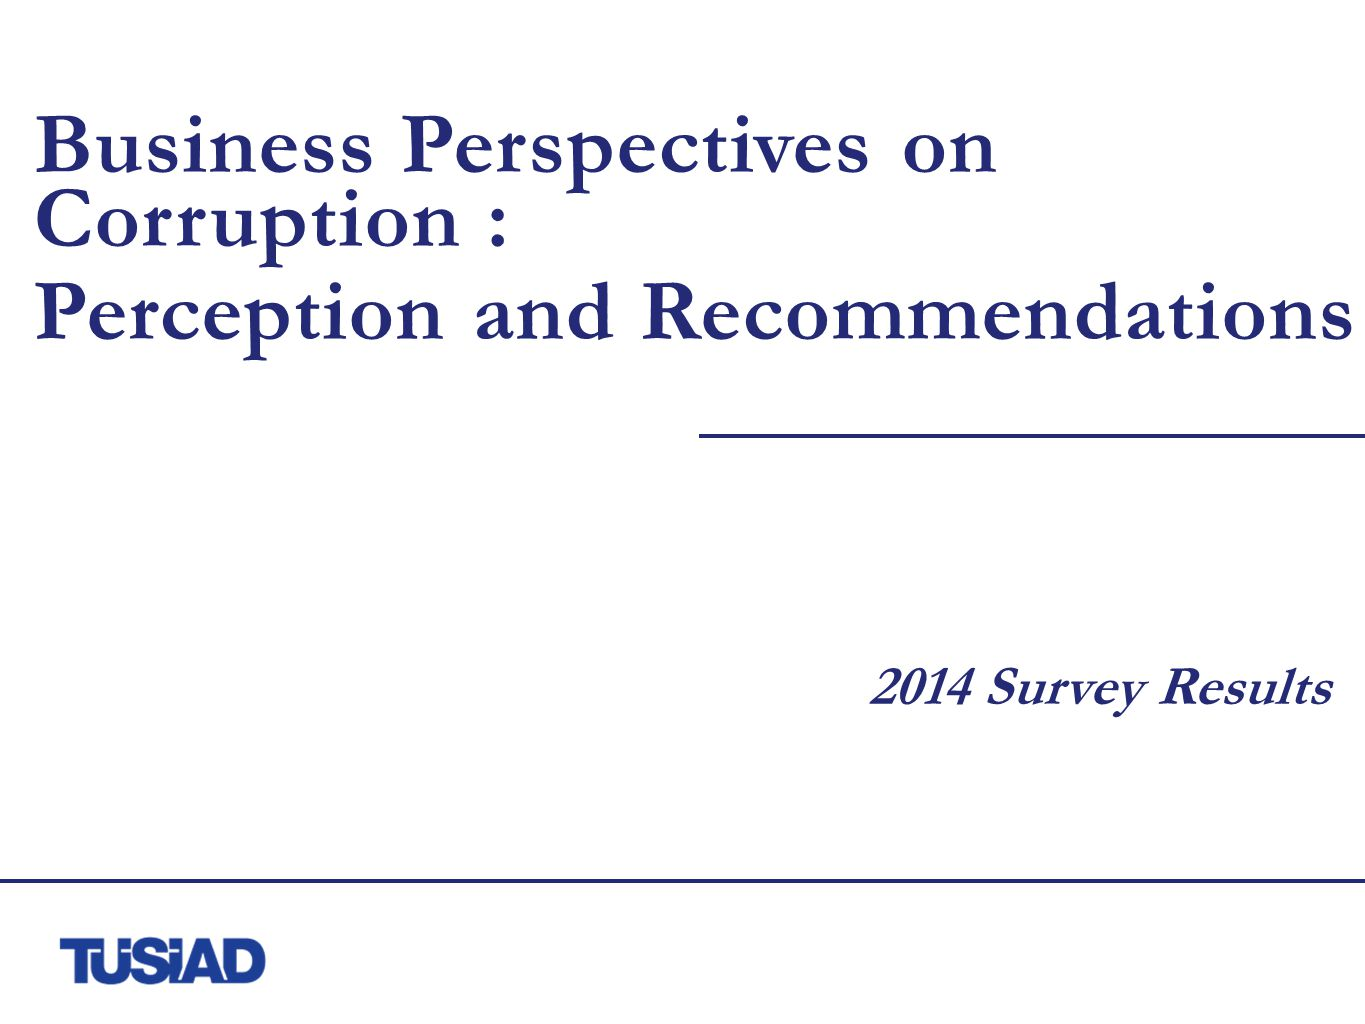 Top three causes of corruption: Inequality, power seeking and lack of enforcement